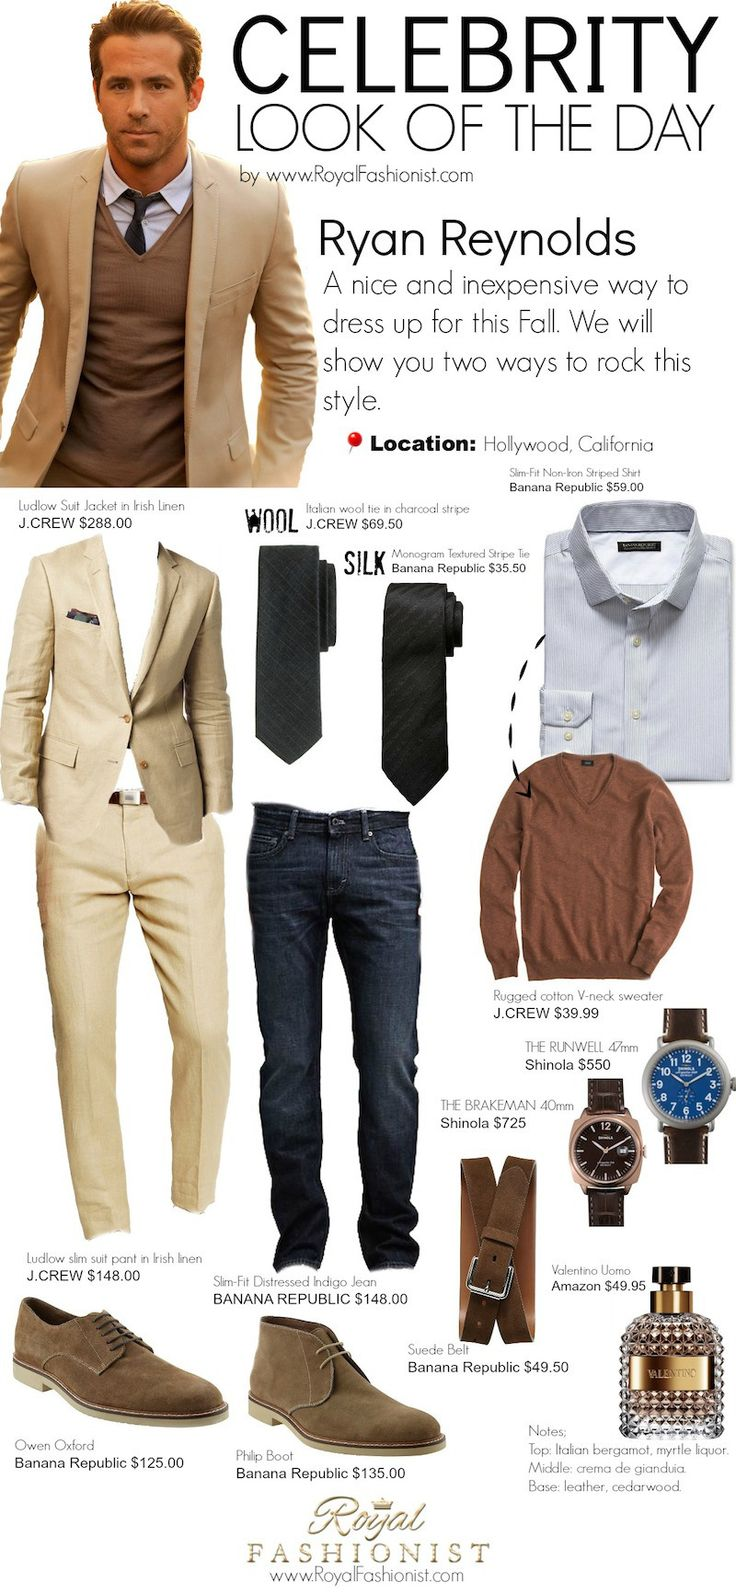 guide for men    Celebrity Look of the Day: Ryan Reynolds Fall Outfit Idea